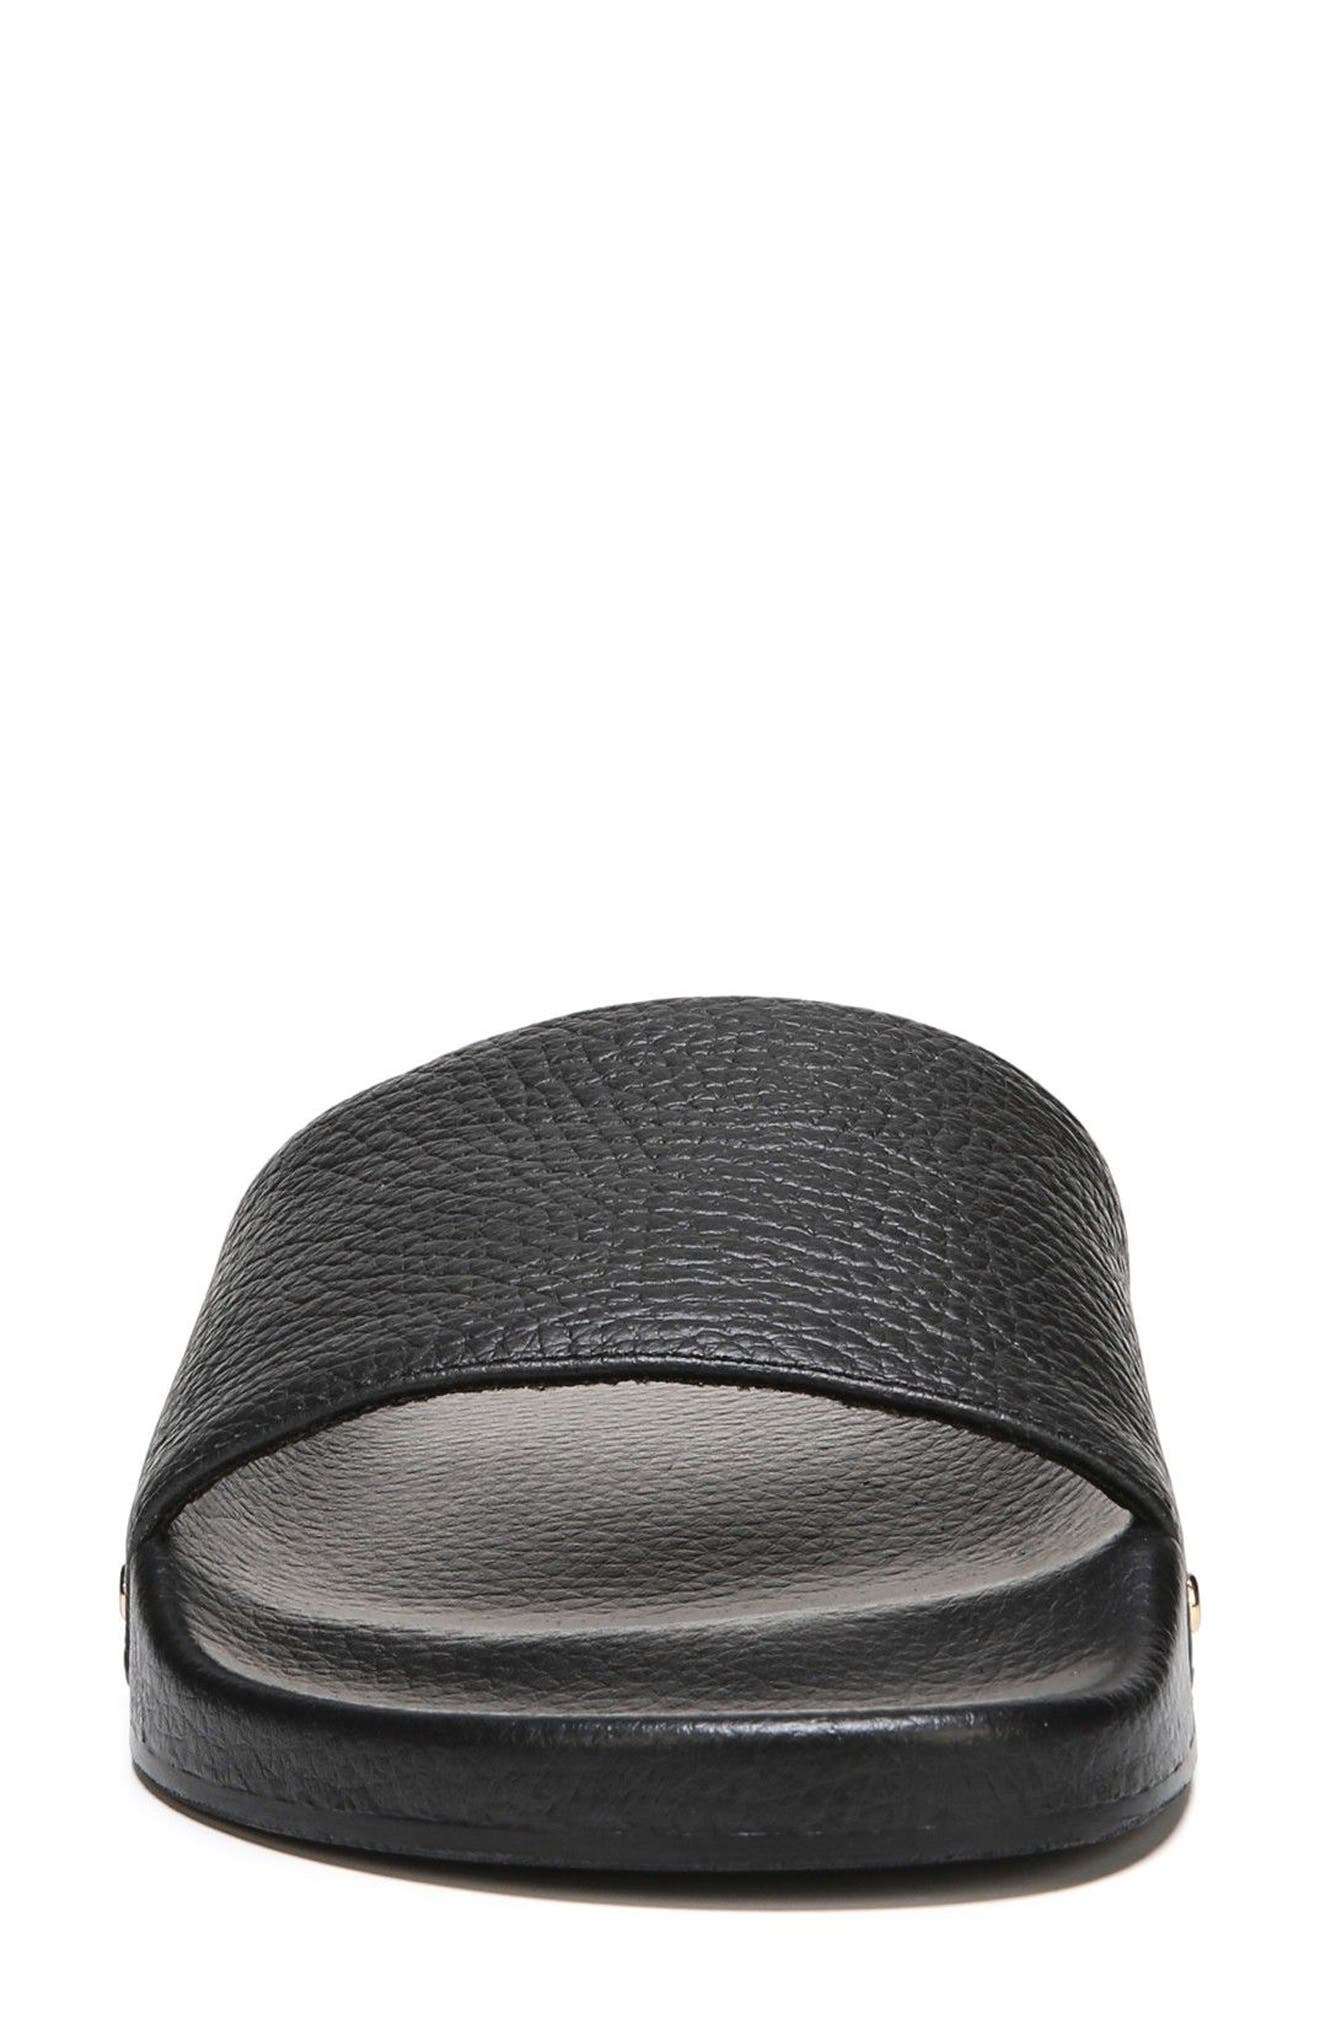 DR. SCHOLL'S, Pisces Slide Sandal, Alternate thumbnail 4, color, BLACK LEATHER